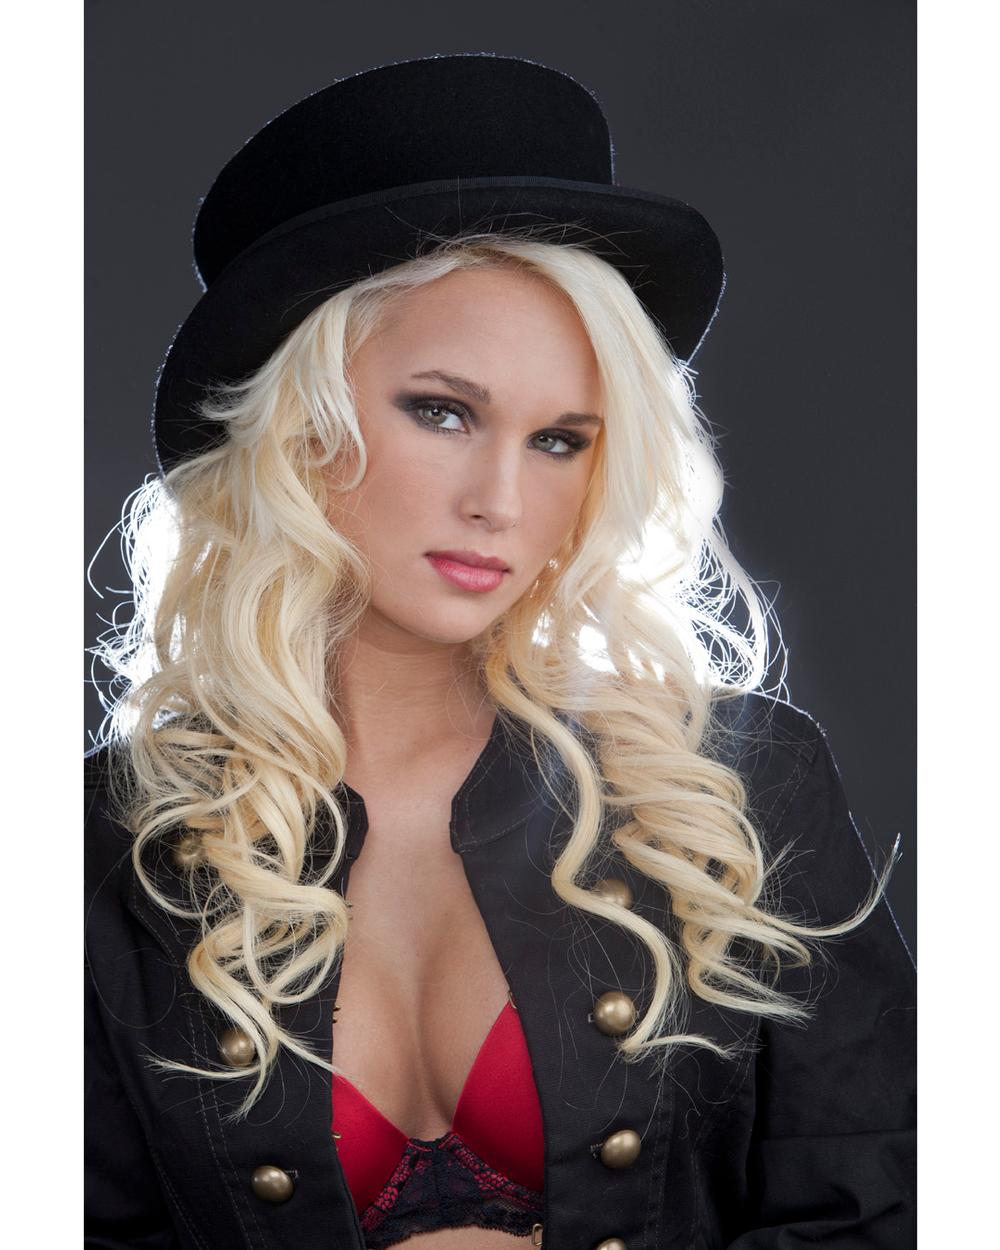 Anna in Top Hat Anna Eliz Truett, Top Hat Series  #annatruett  #tophat  #blonde